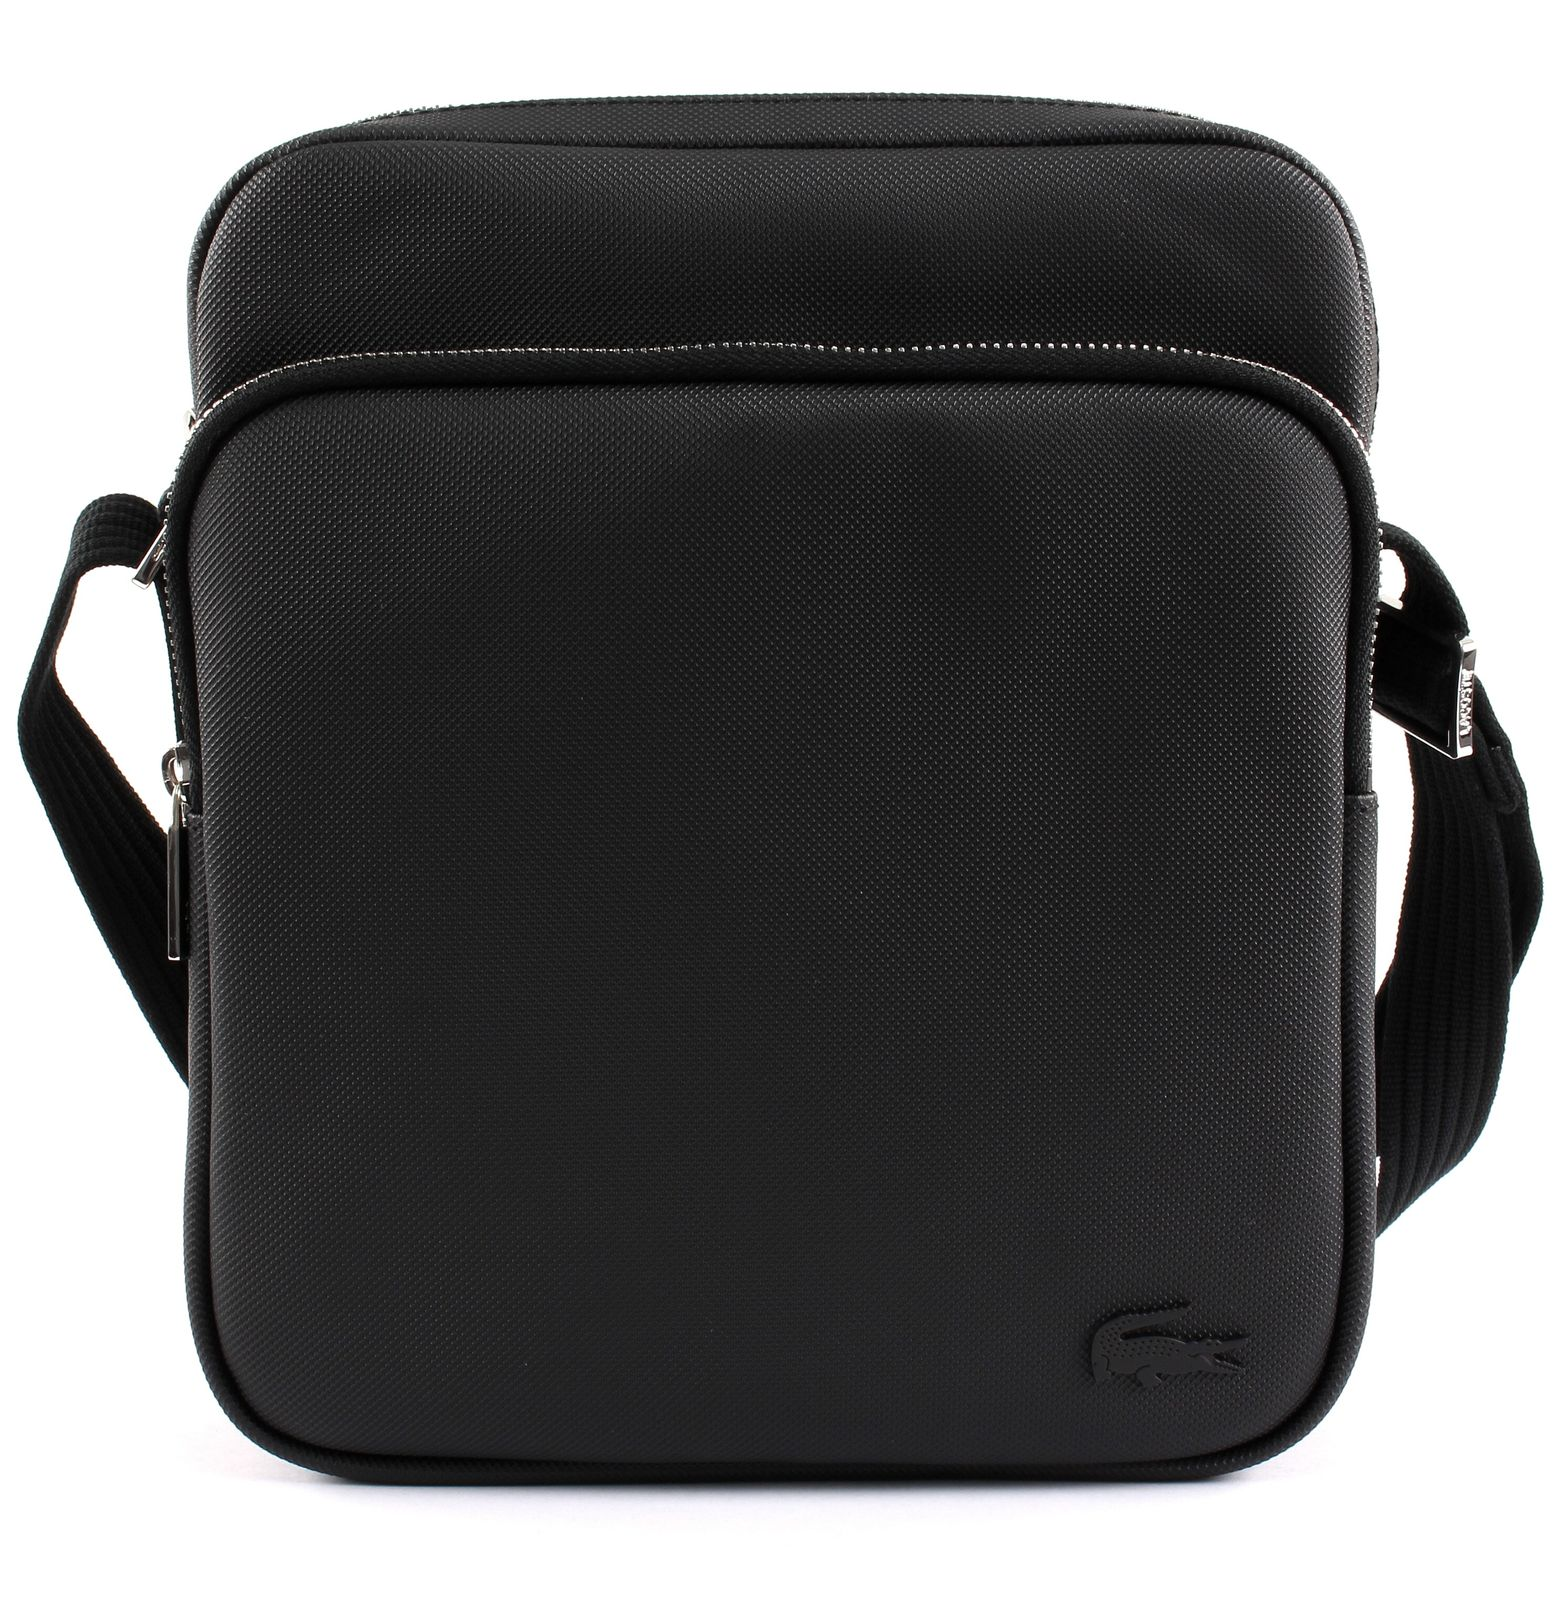 34b8d5f3 LACOSTE Men's Classic Crossover Bag Black